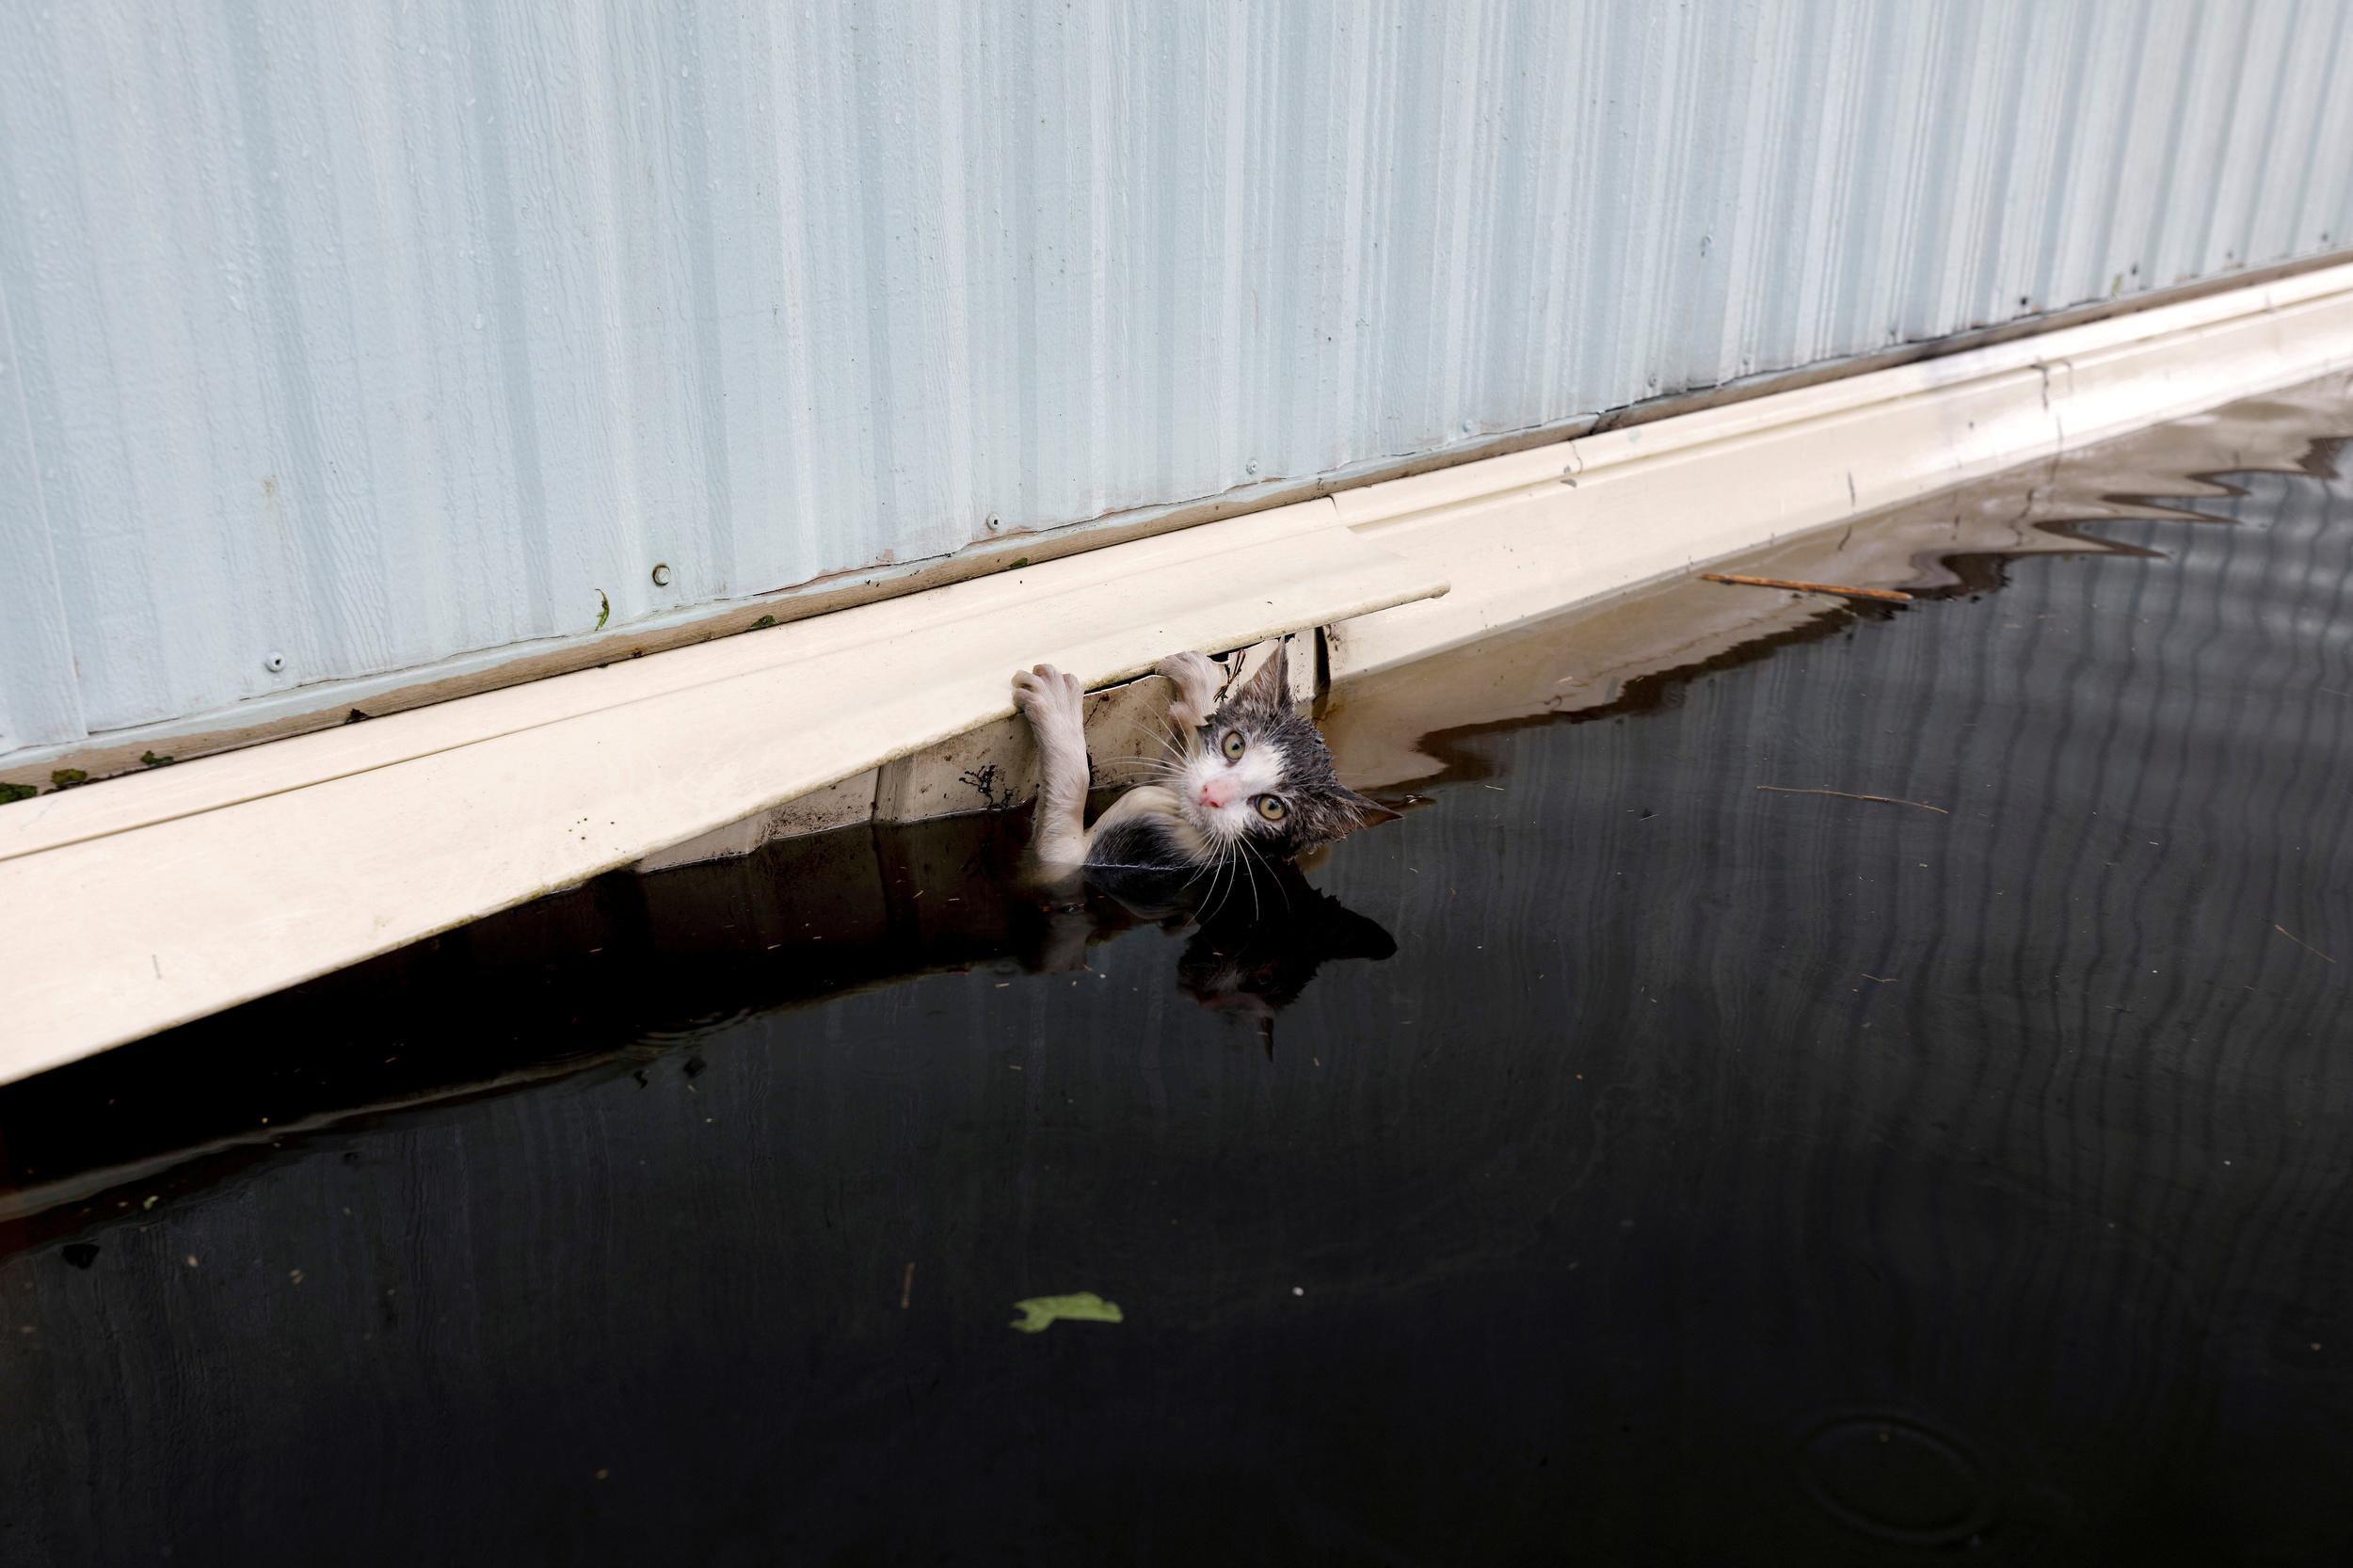 A cat clings to the side of a trailer amidst flood waters before it was saved as the Northeast Cape Fear River breaks its banks in the aftermath Hurricane Florence in Burgaw, North Carolina, U.S., September 17, 2018. REUTERS/Jonathan Drake TPX IMAGES OF THE DAY